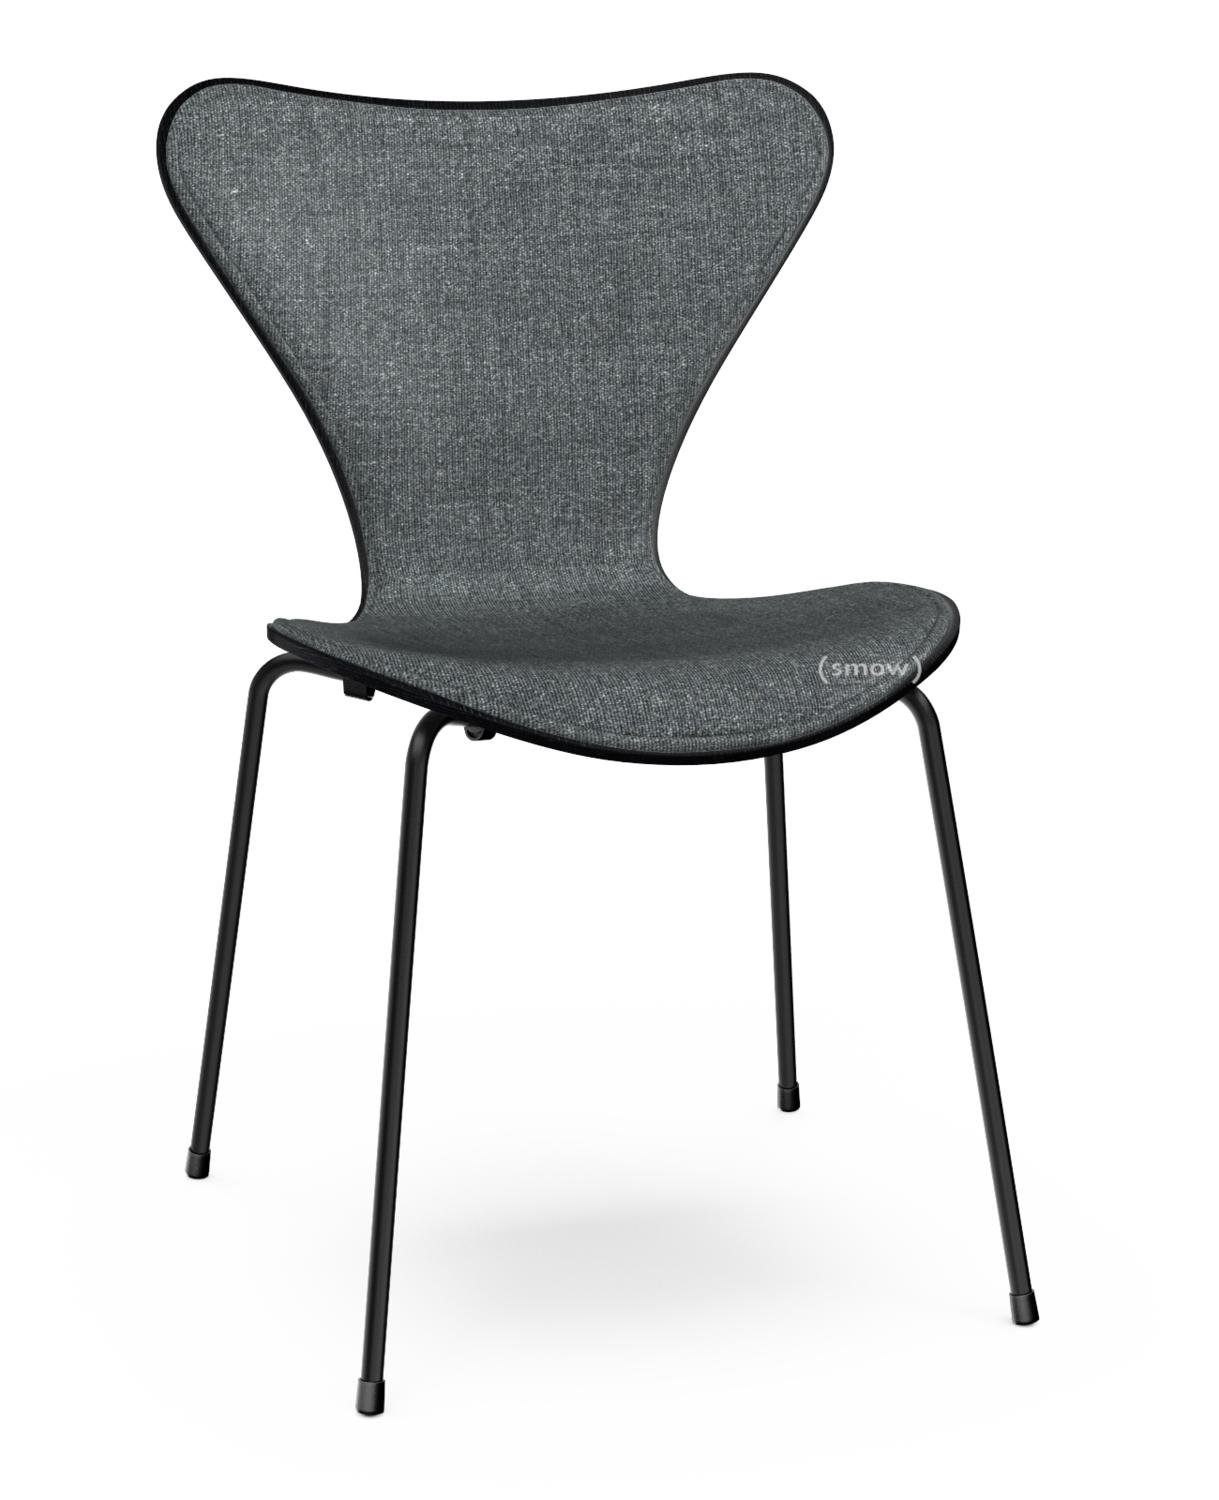 fritz hansen serie 7 stuhl mit frontpolster von arne jacobsen 1955 designerm bel von. Black Bedroom Furniture Sets. Home Design Ideas